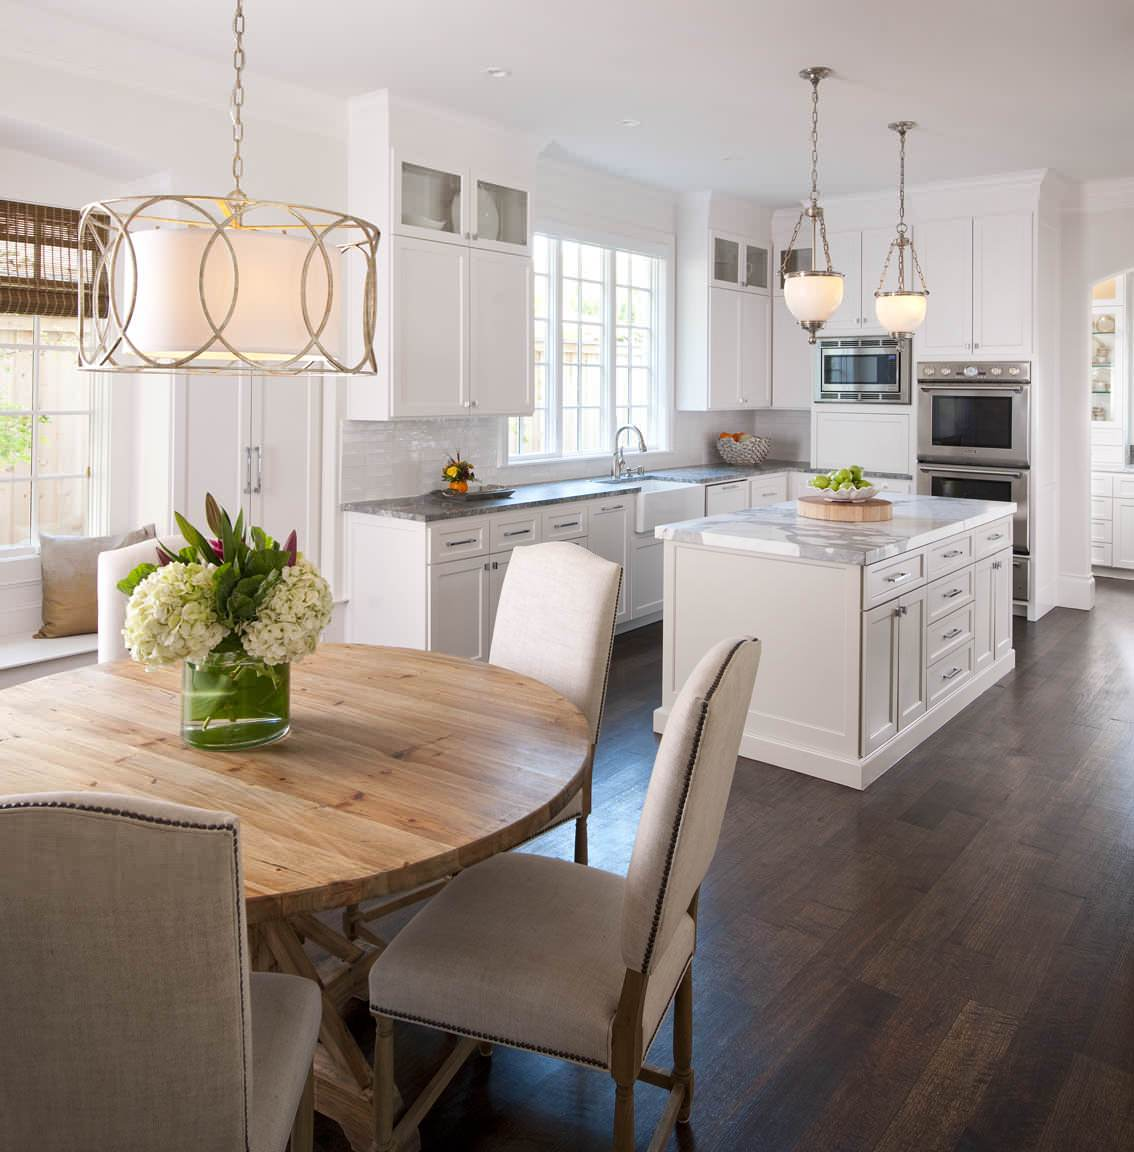 floor to ceiling white cabinet granite countertop wooden rounded dining table dark hardwood floor pendant lights